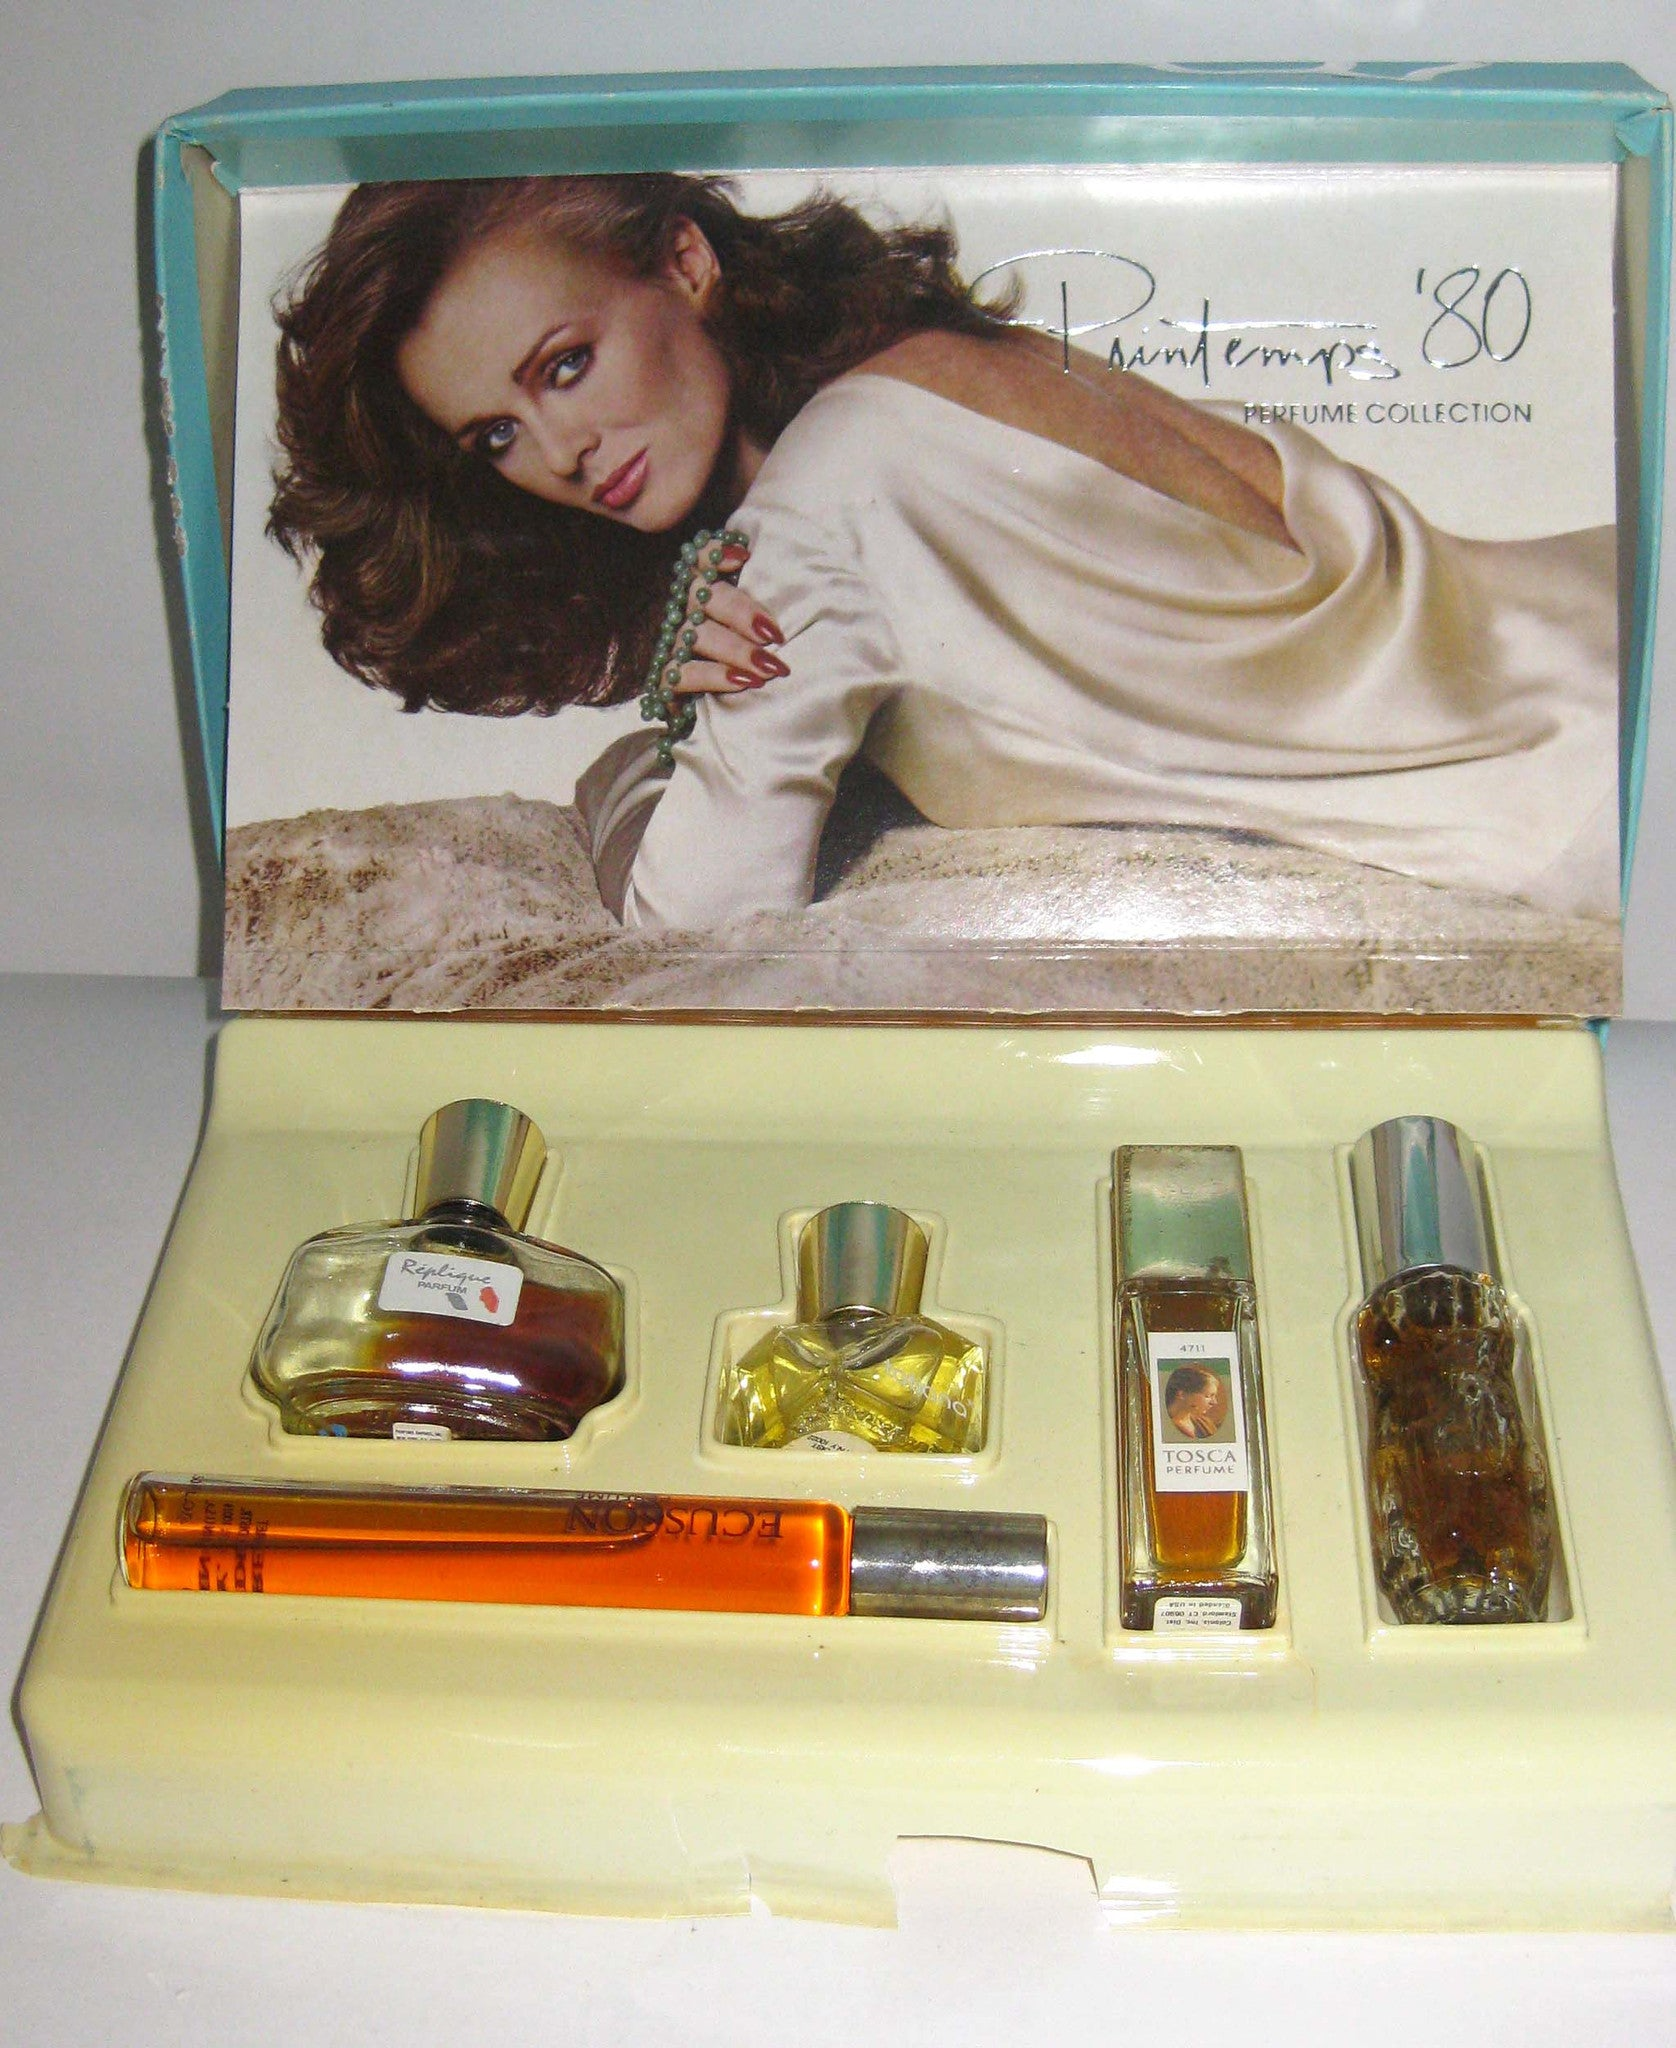 Printemps 80' Perfume Collection